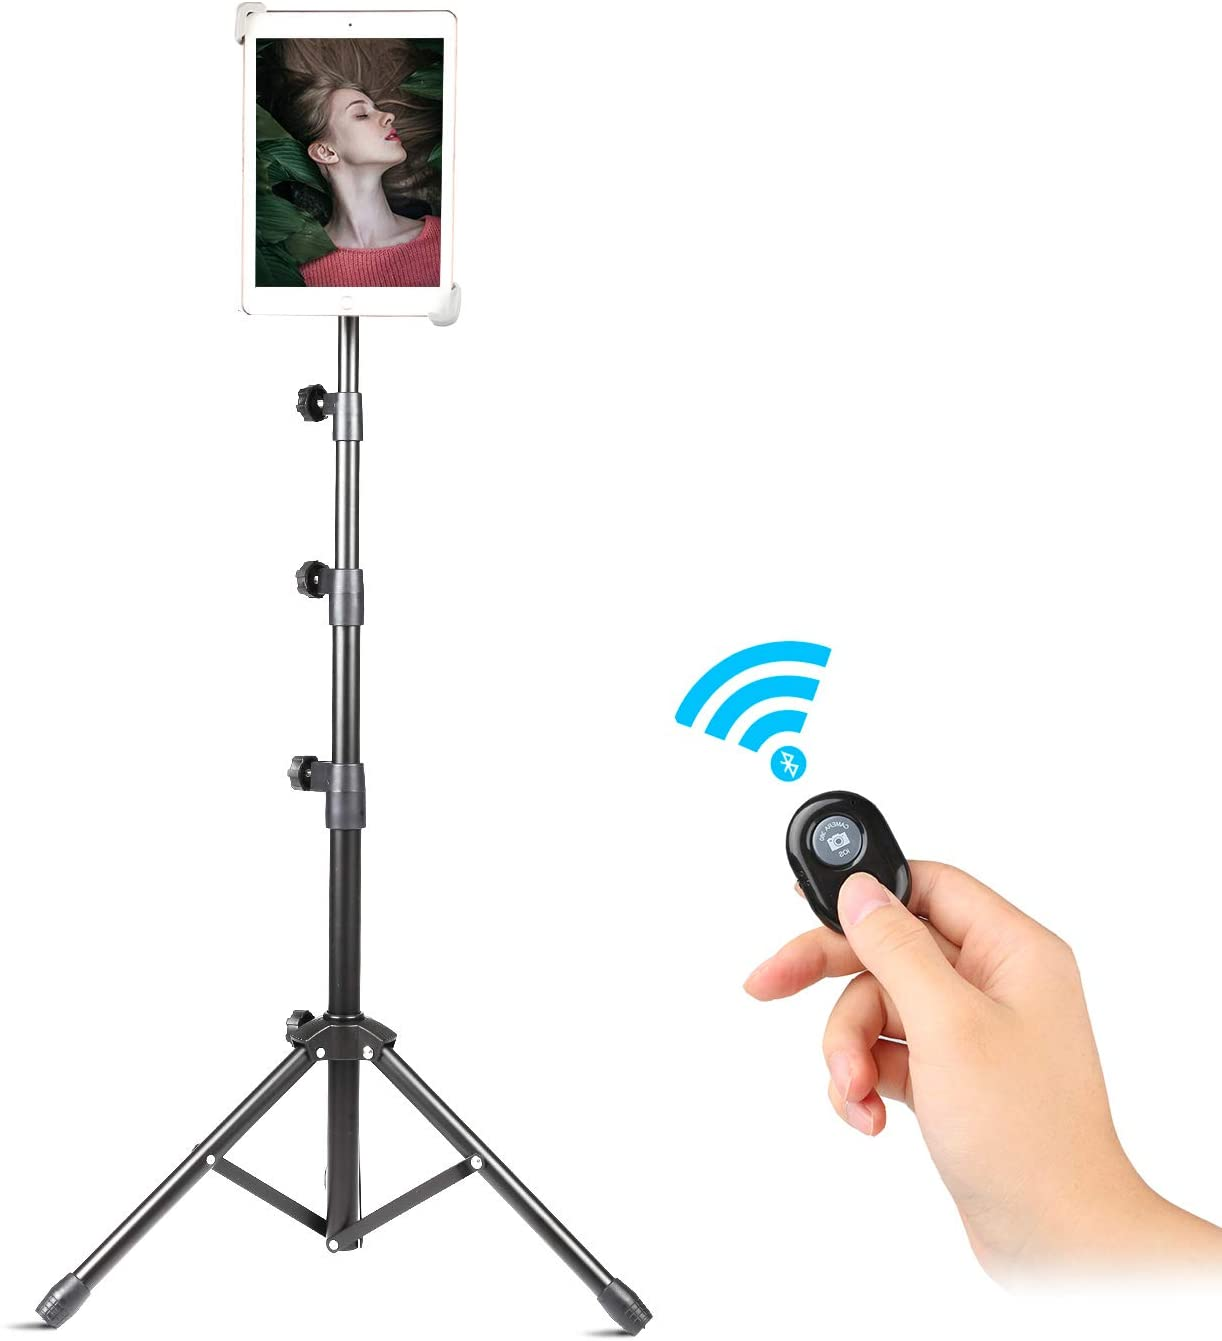 Tripod Stand for iPad Video Recording, Up to 55 Inch Height Adjustable Foldable Floor Tablet Stand with 360° Rotating Holder, Samsung and More 7.9